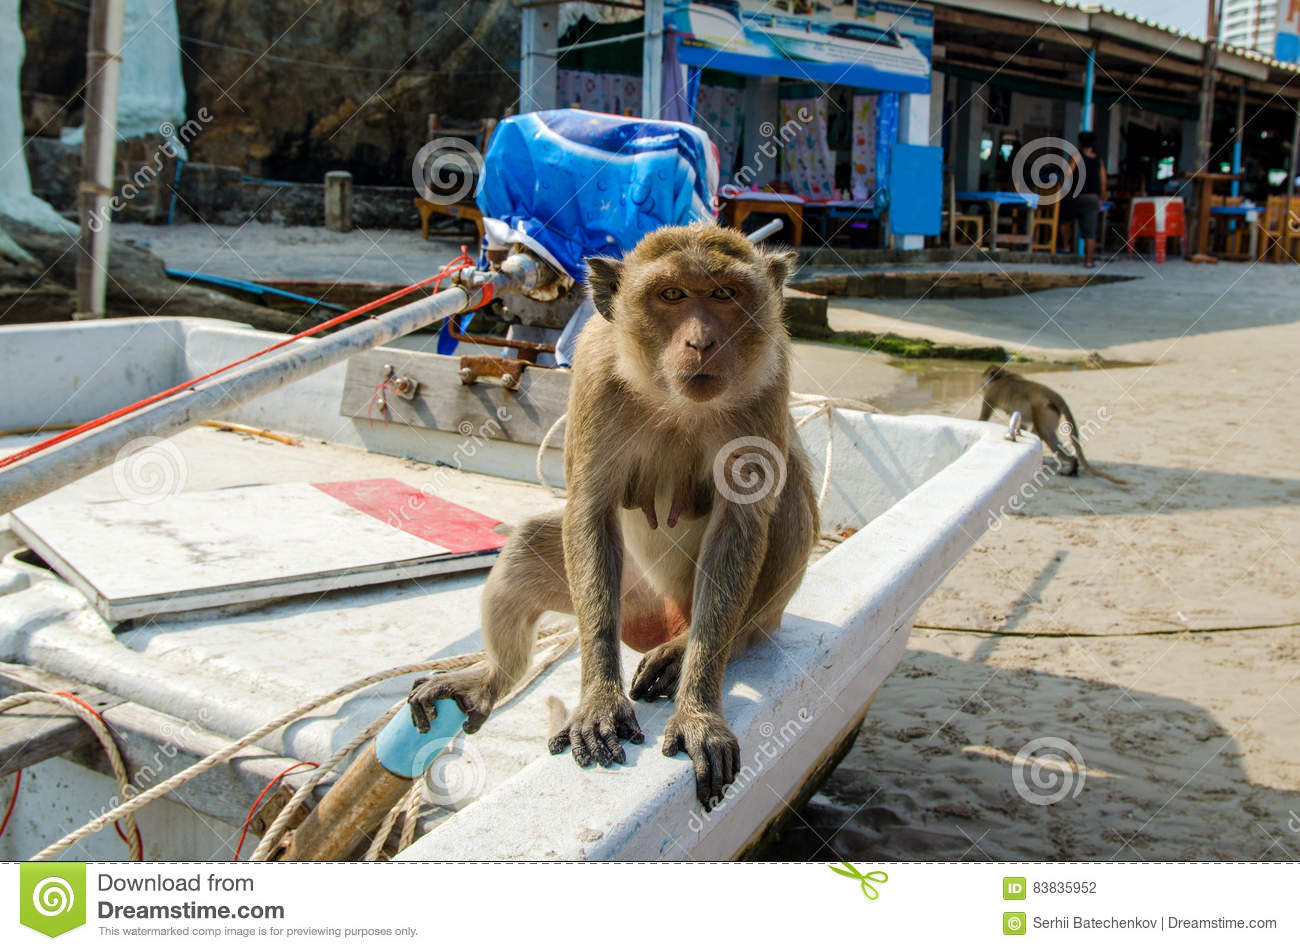 The monkey sitting in the boat on the beach on the background of cafe